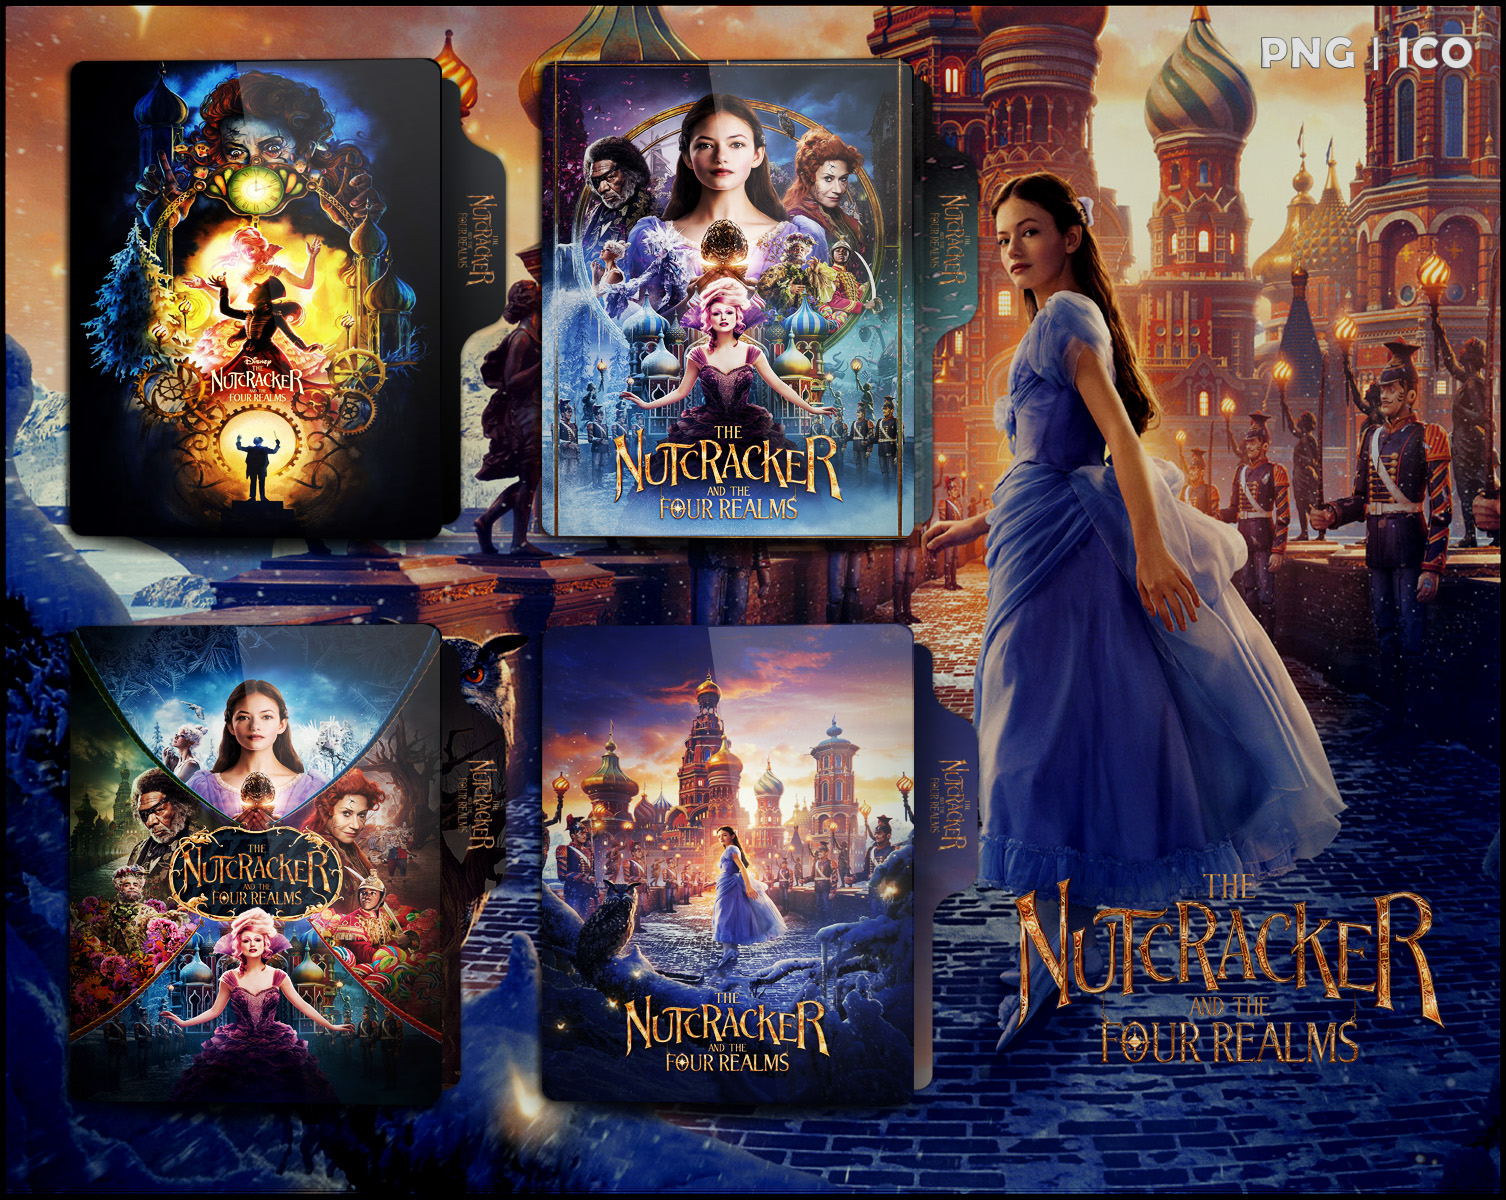 The Nutcracker And The Four Realms Folder Icon By Omidh3ro On Deviantart